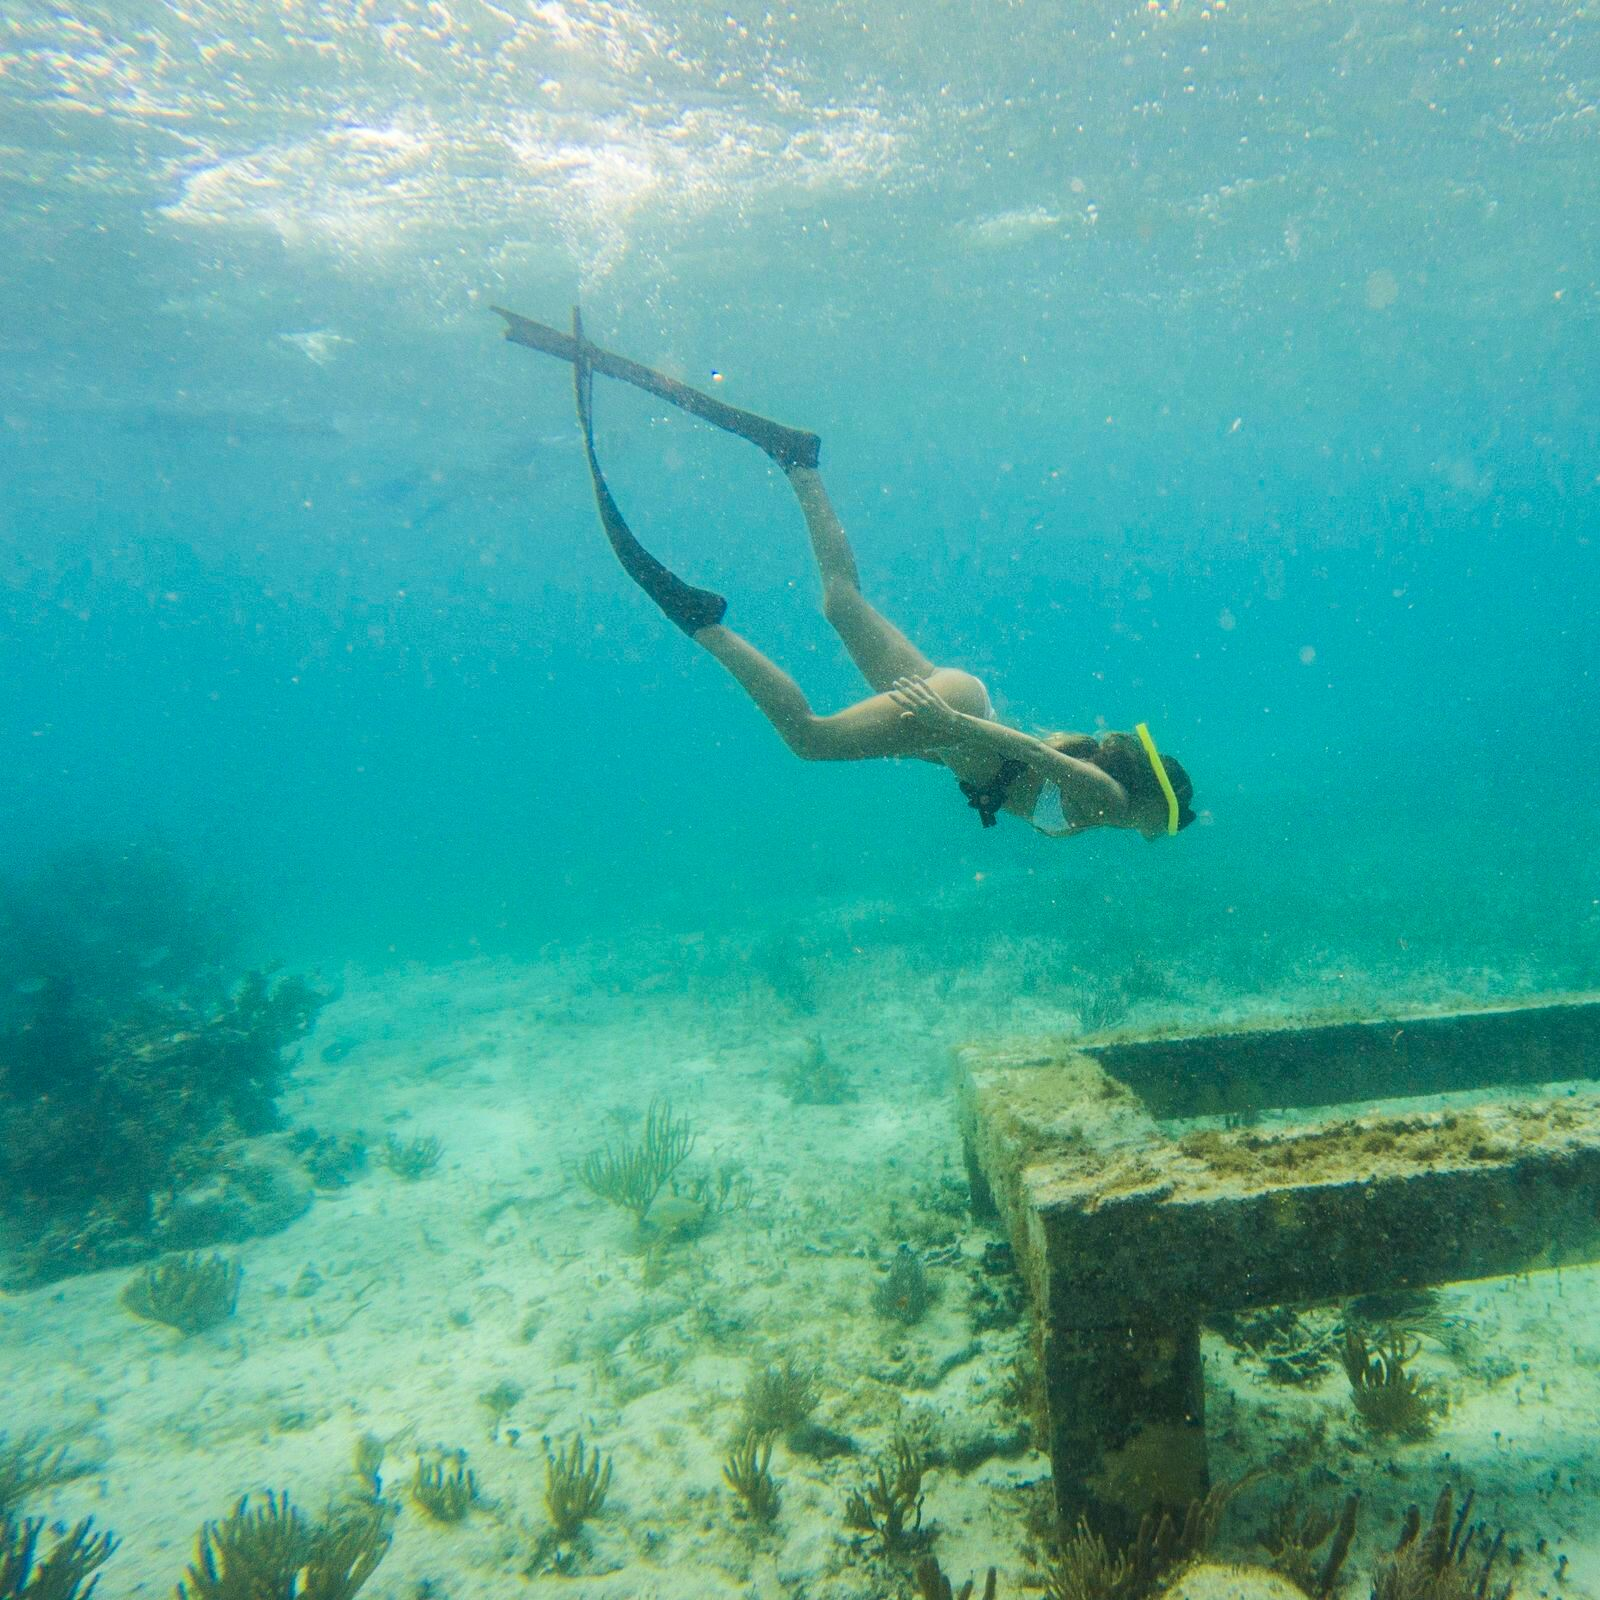 Go snorkeling in MUSA, in Cancún, Mexico, with Alex Lettrich